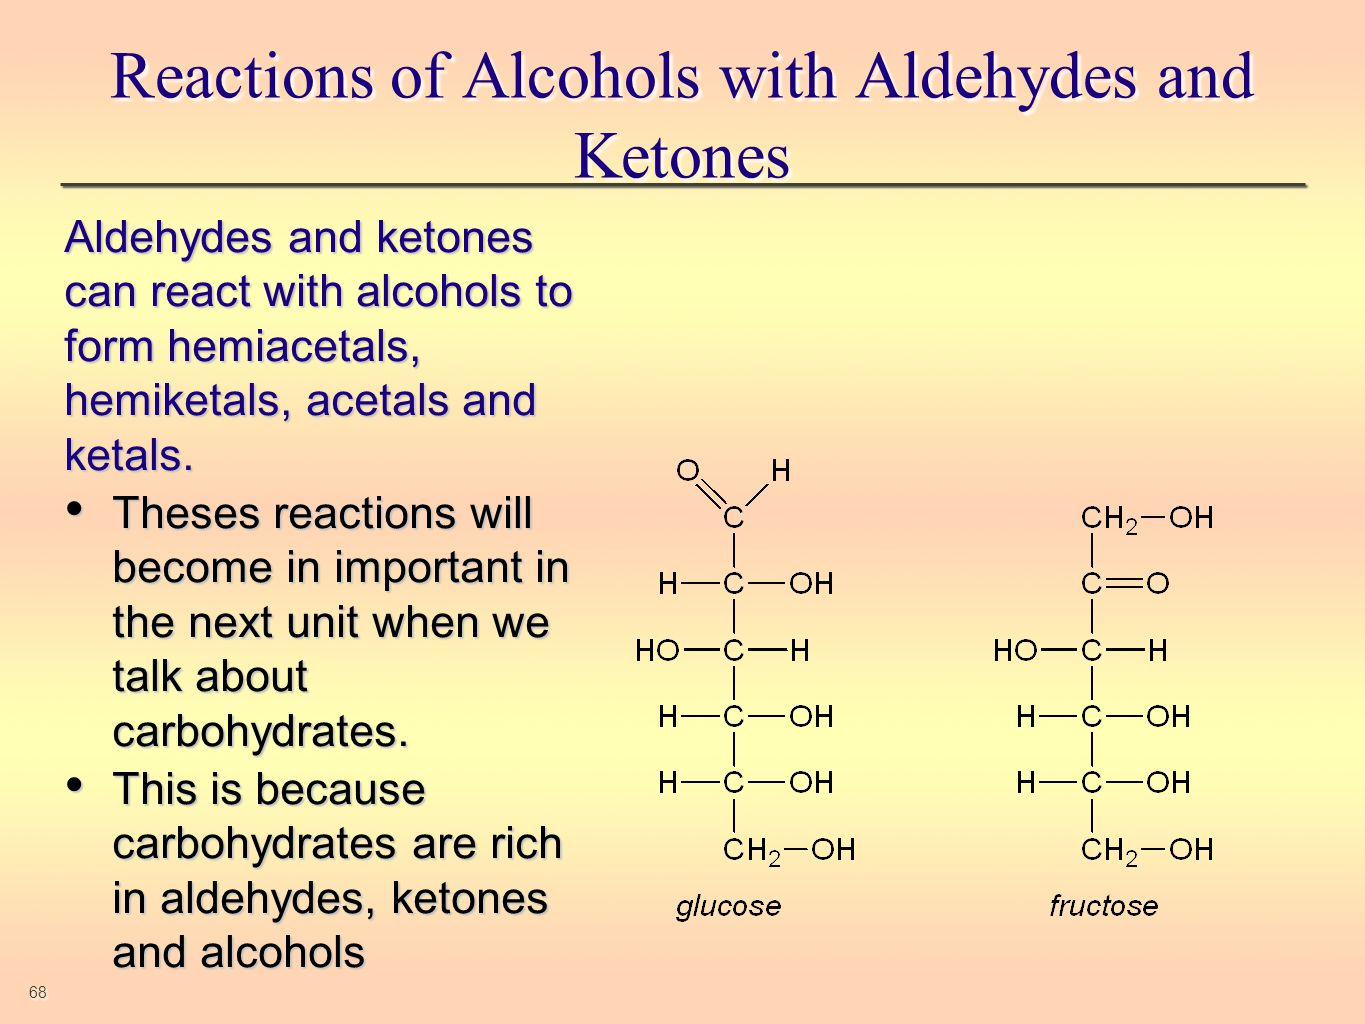 reactions of aldehydes and ketones essay Identification of aldehydes and ketones essay sample  hemiacetals, the products of reactions between alcohols and either aldehydes or ketones, are important in.